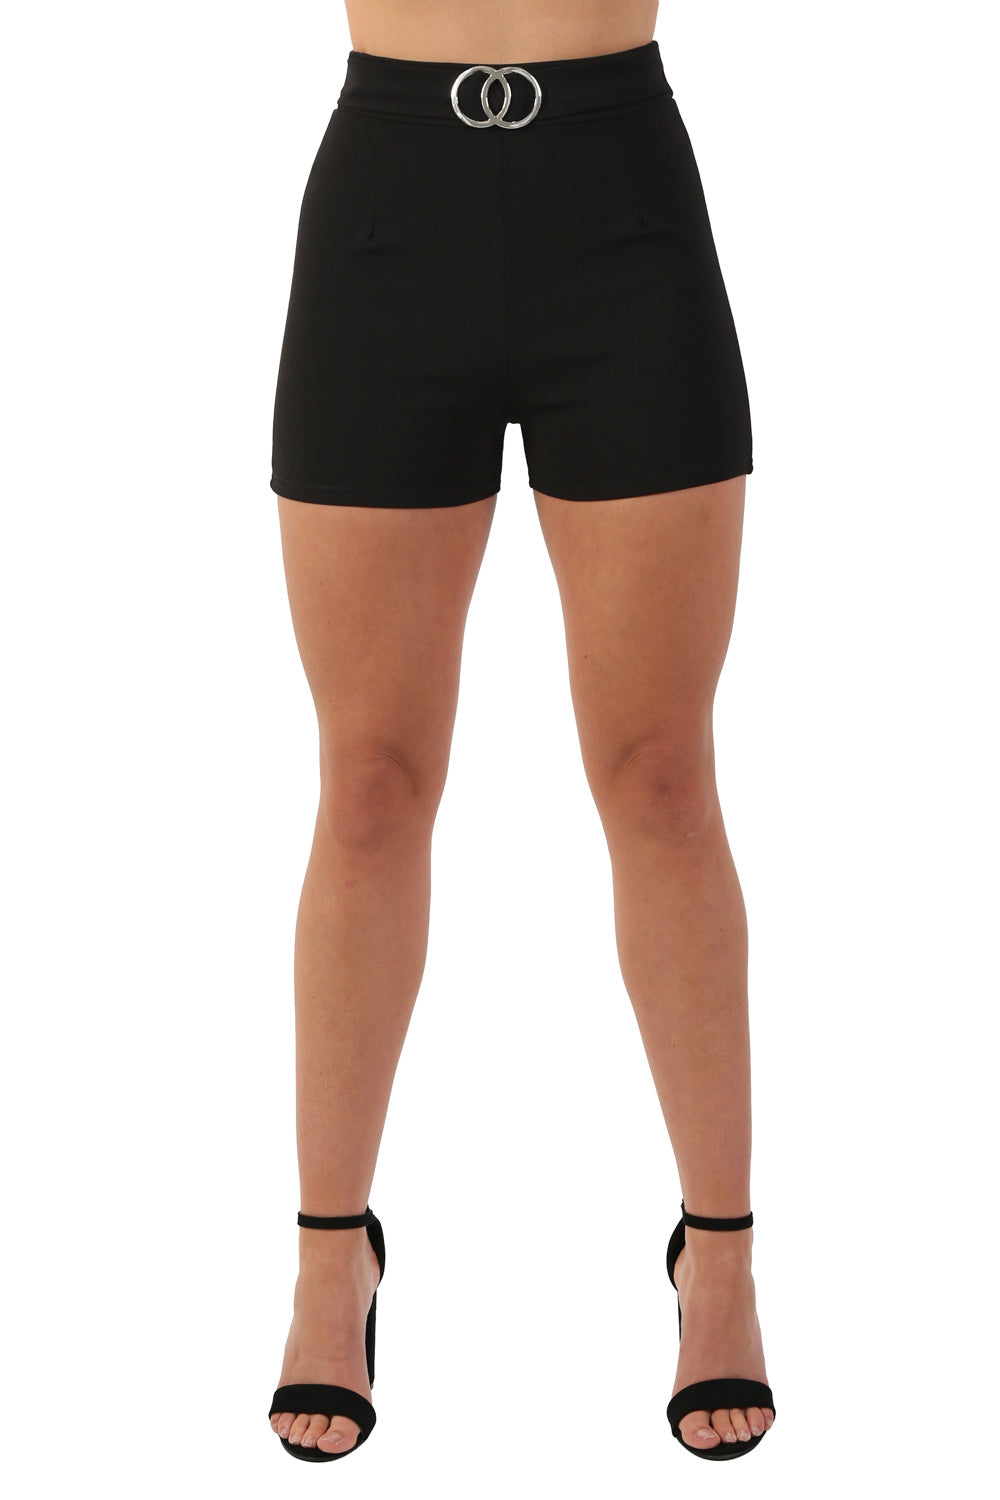 Double Circle Buckle Detail High Waisted Fitted Shorts in Black